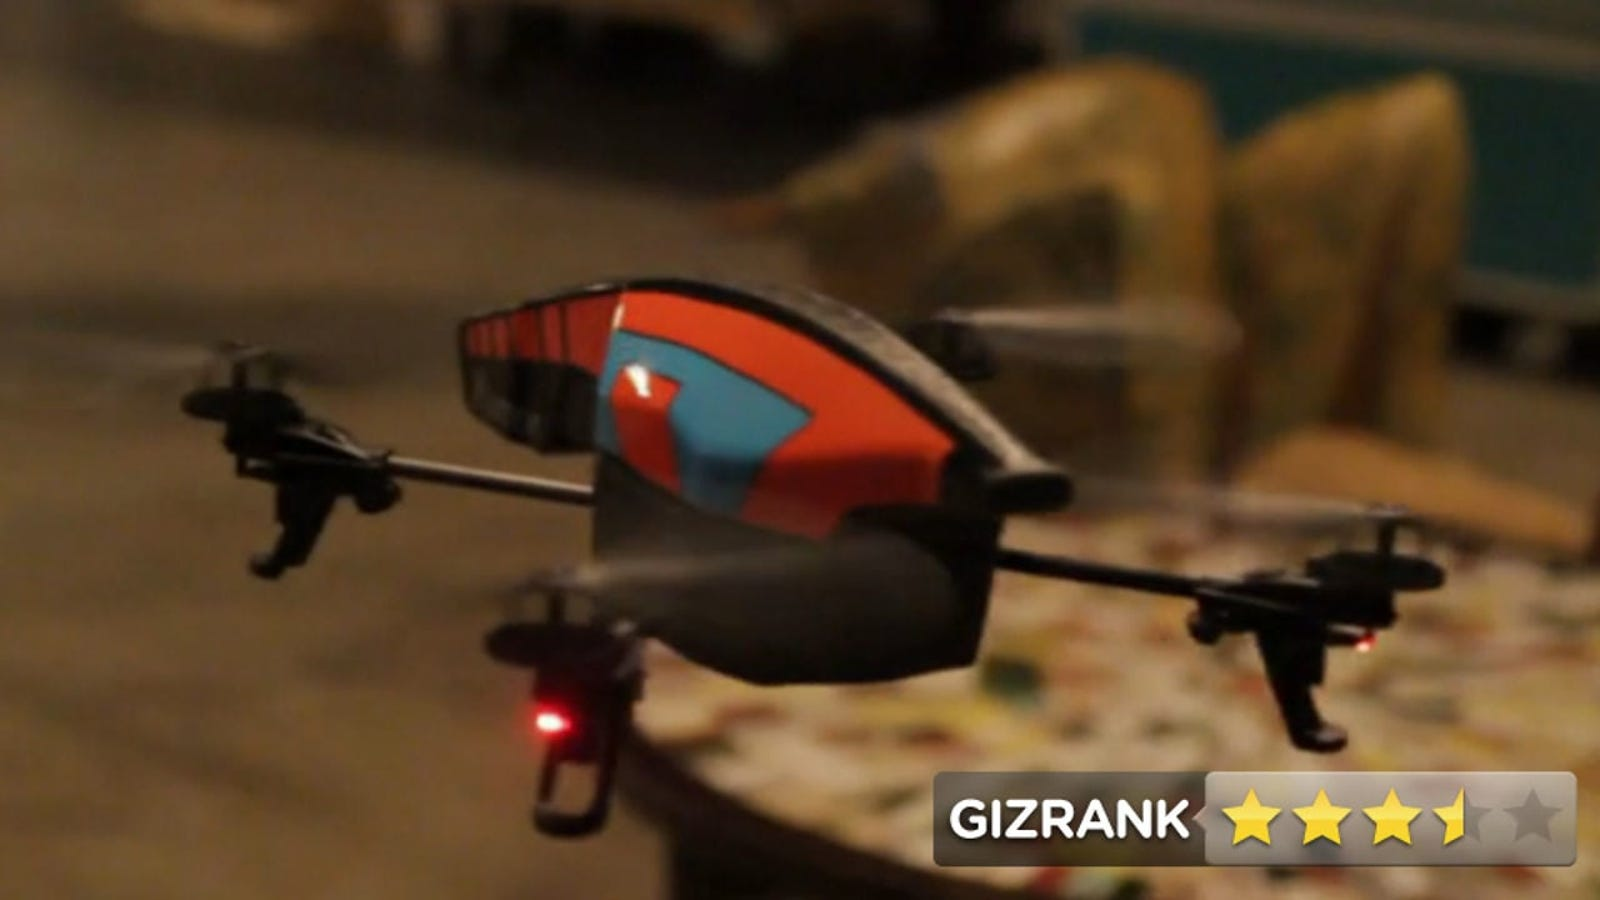 Parrot AR Drone 2 0 Review: Your Own Private Predator